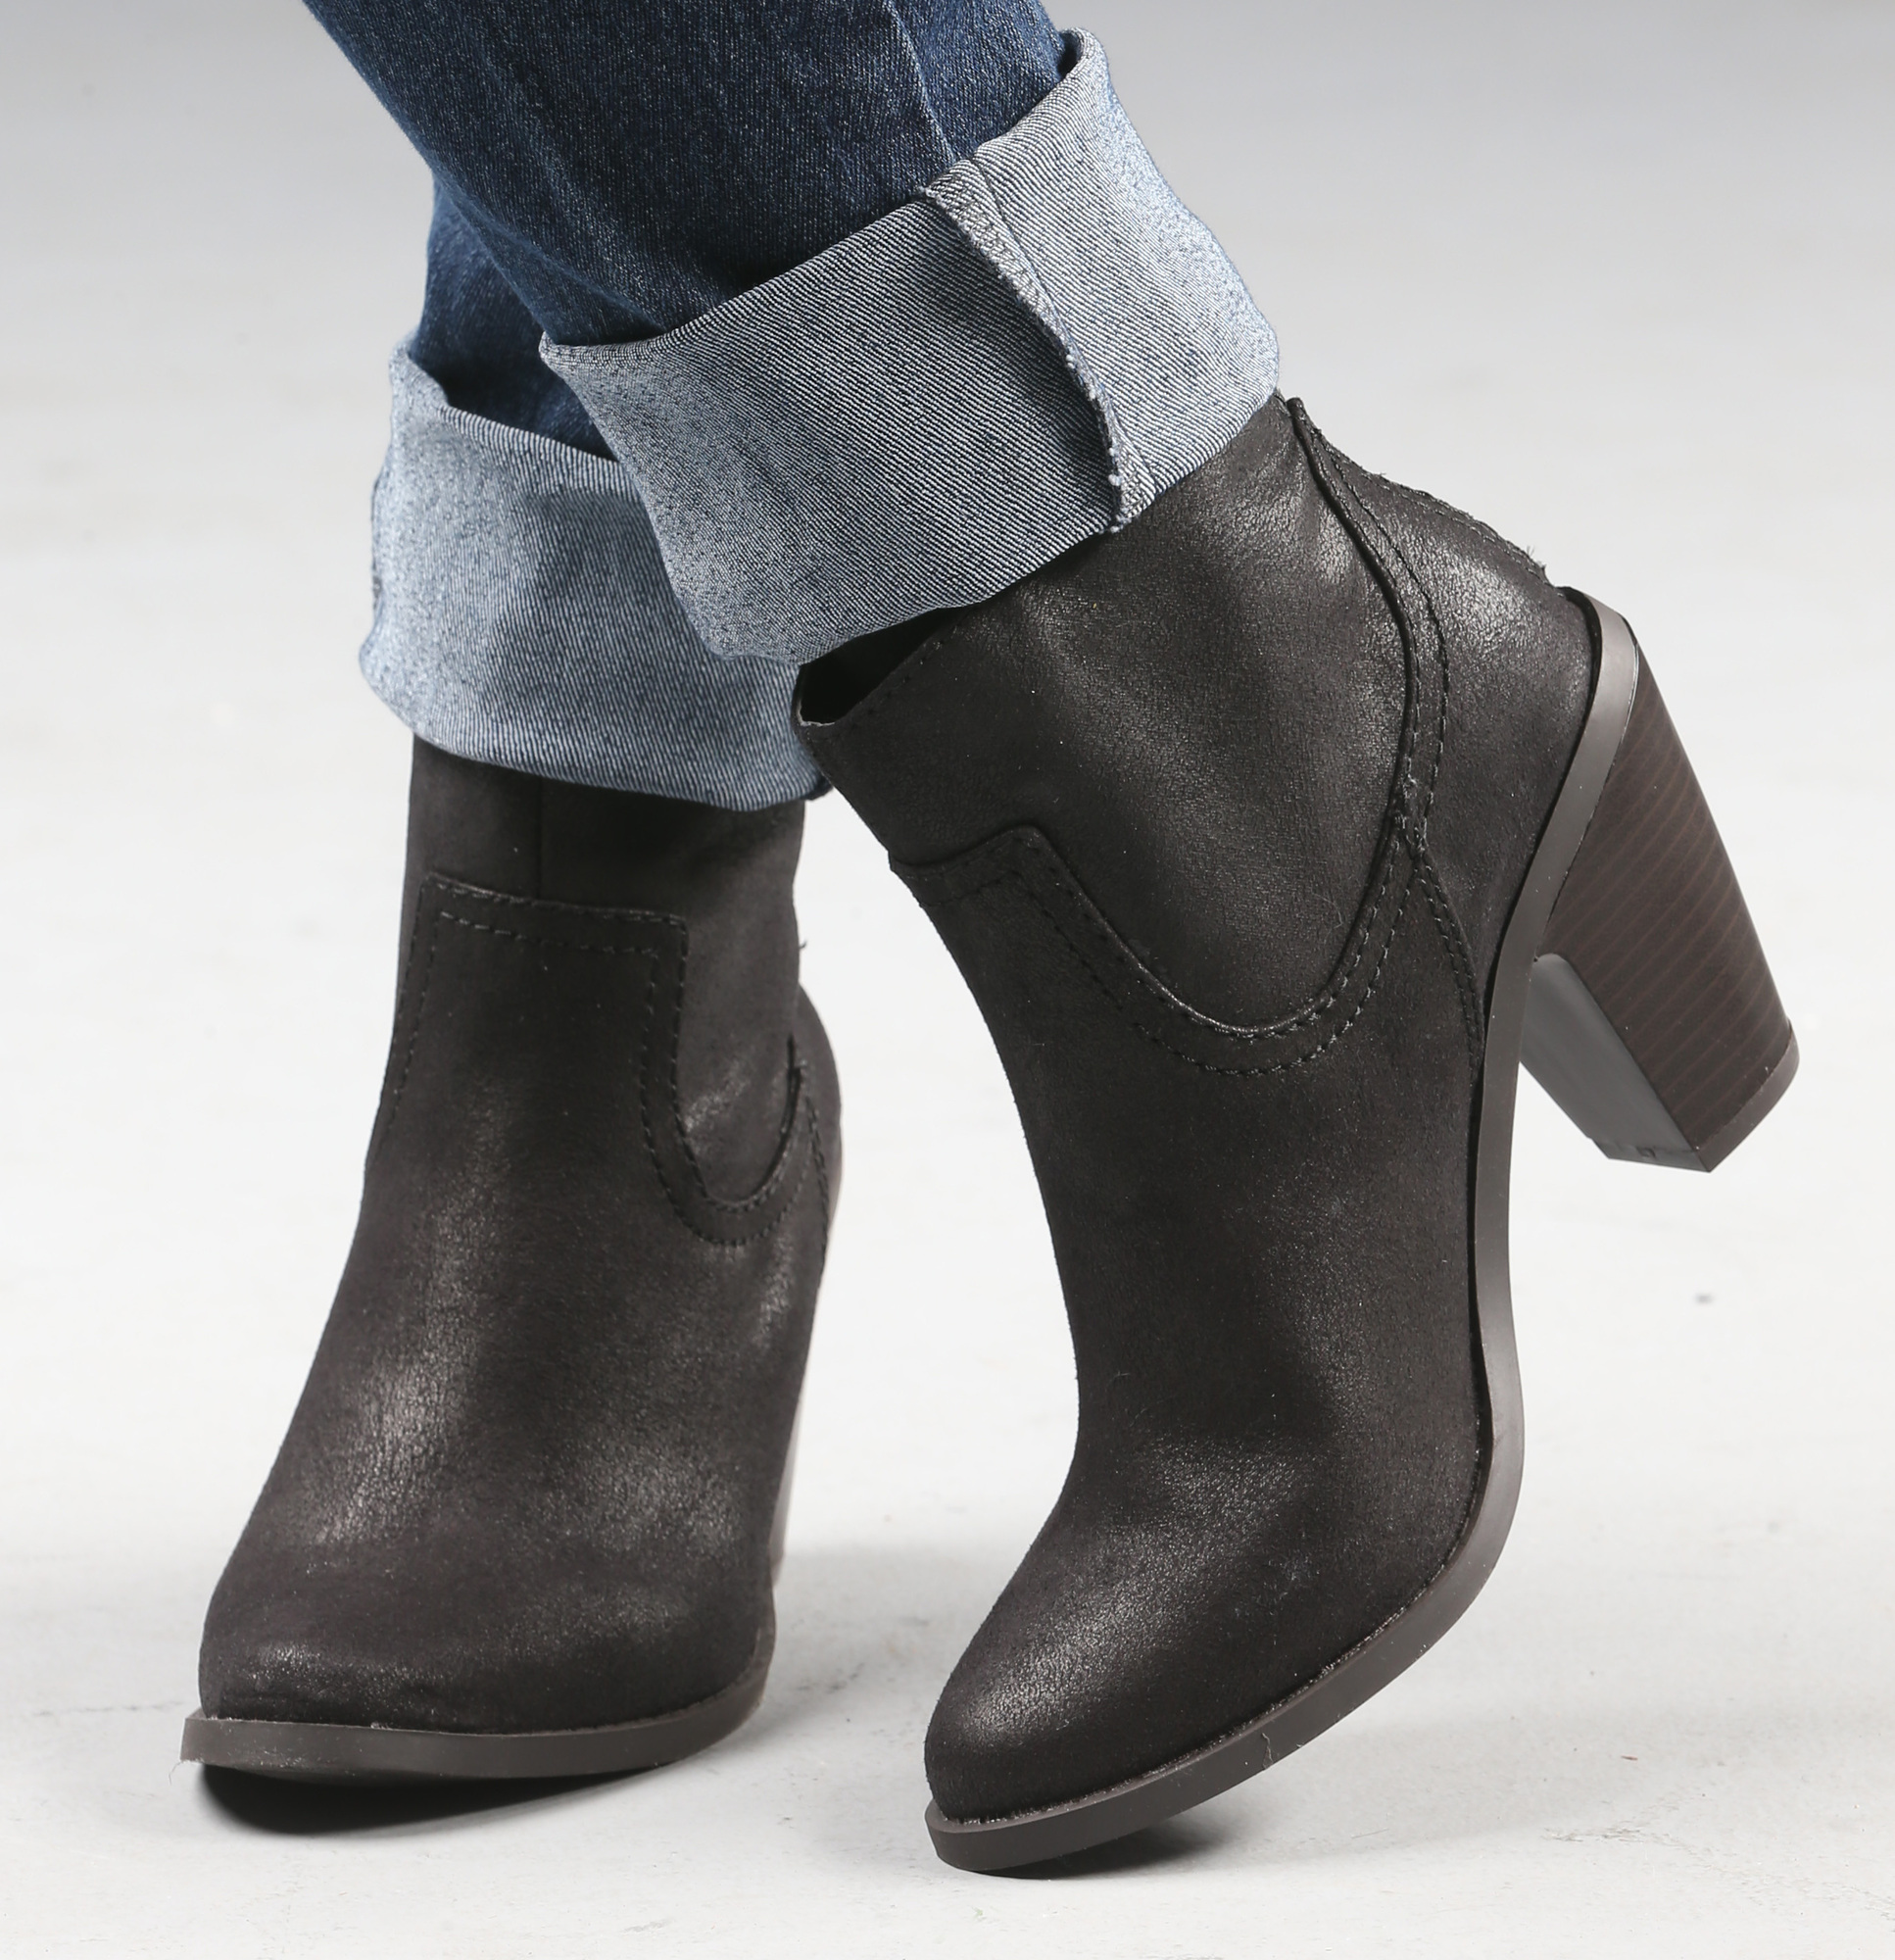 short boots guide to styling short and tall boots OCLEIIX